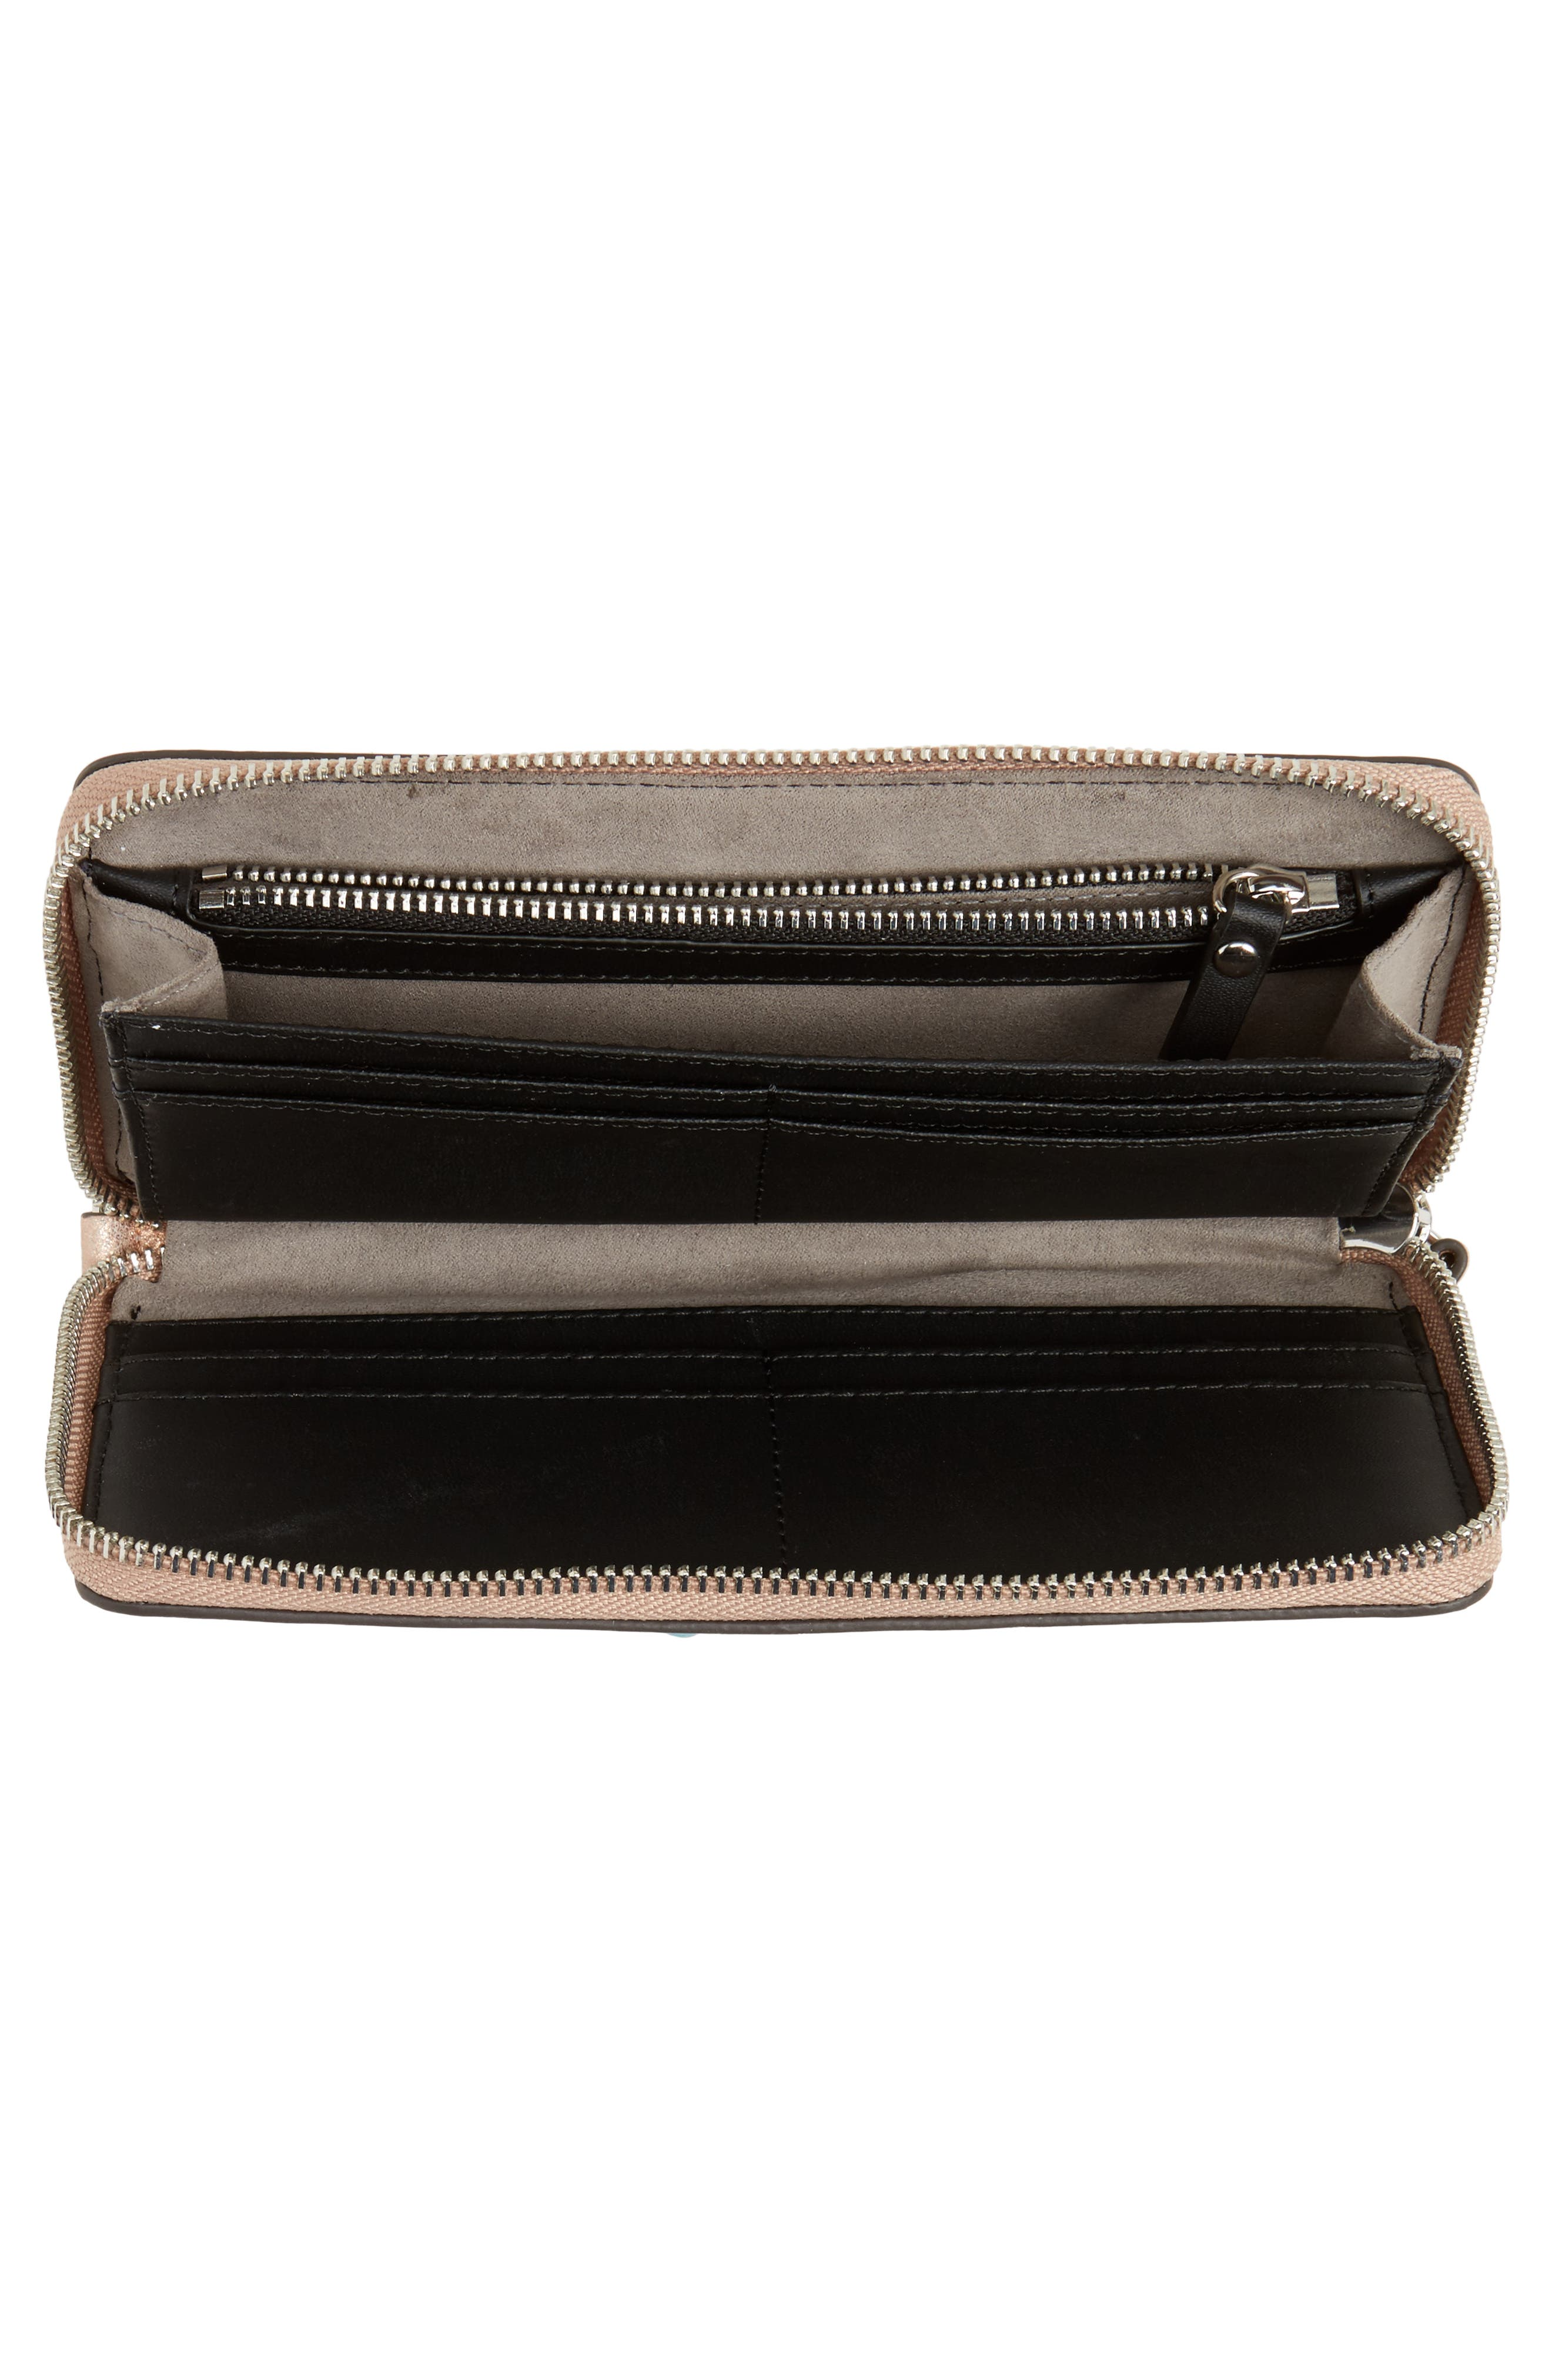 Taz Leather Zip Around Wallet,                             Alternate thumbnail 4, color,                             ROSE GOLD